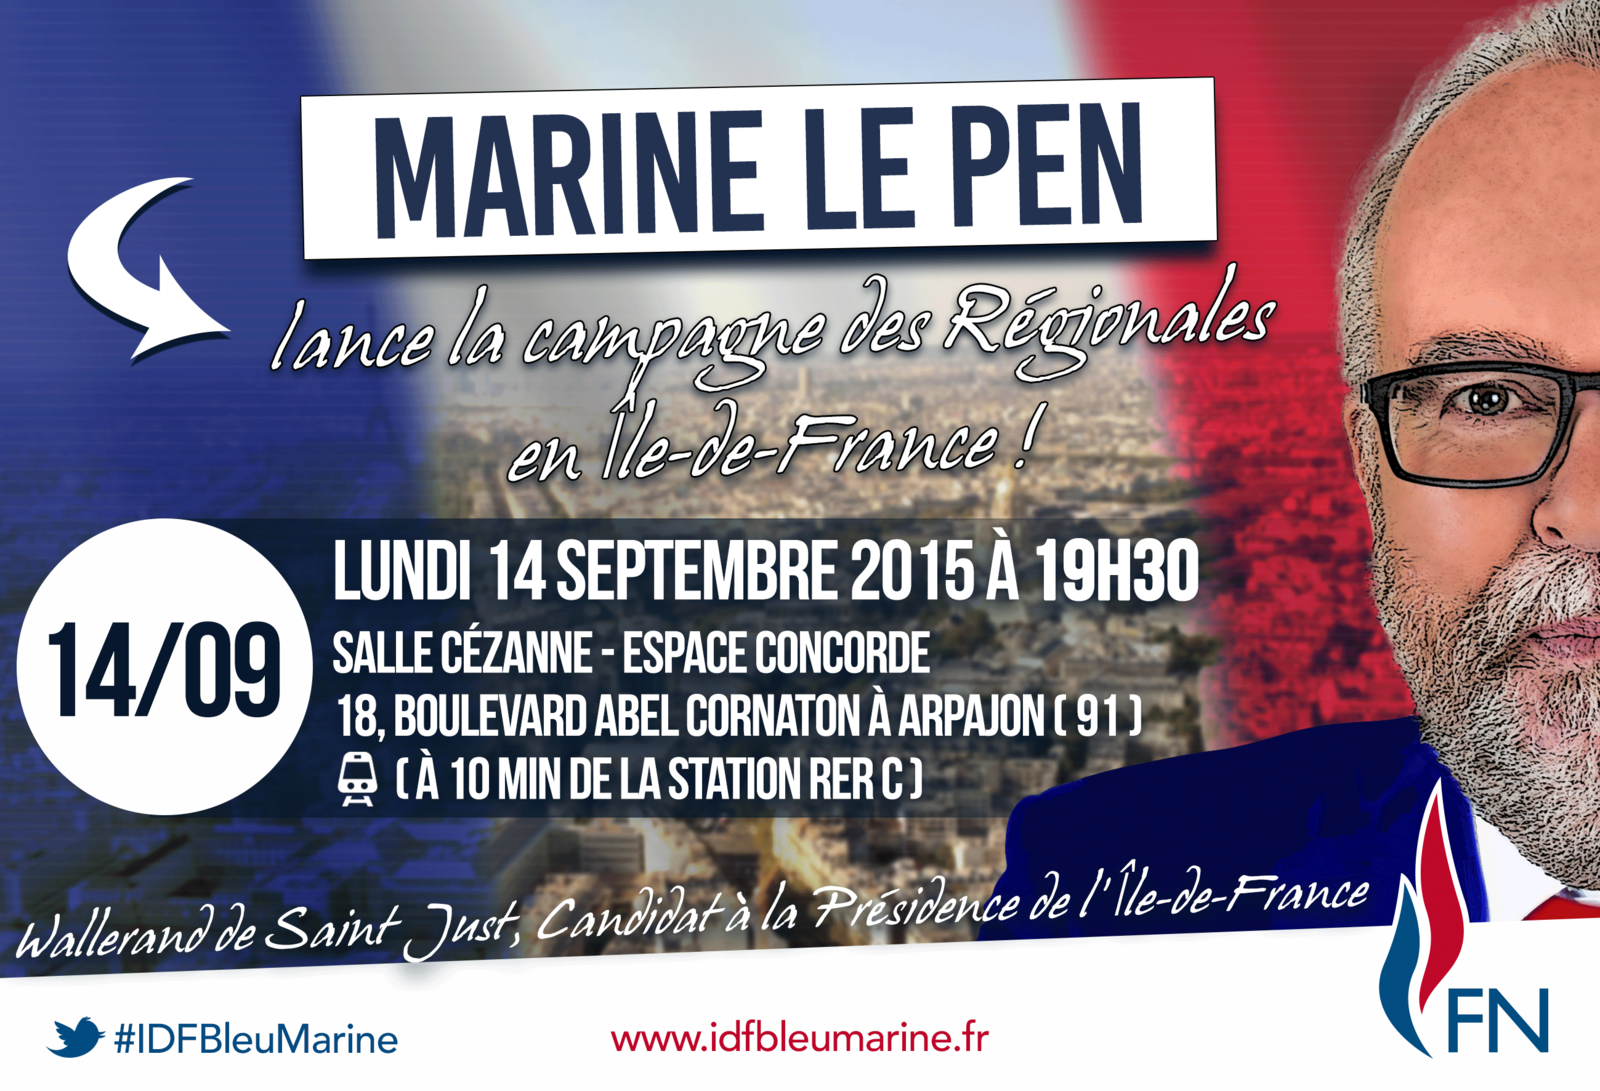 MEETING DE MARINE LE PEN A ARPAJON !